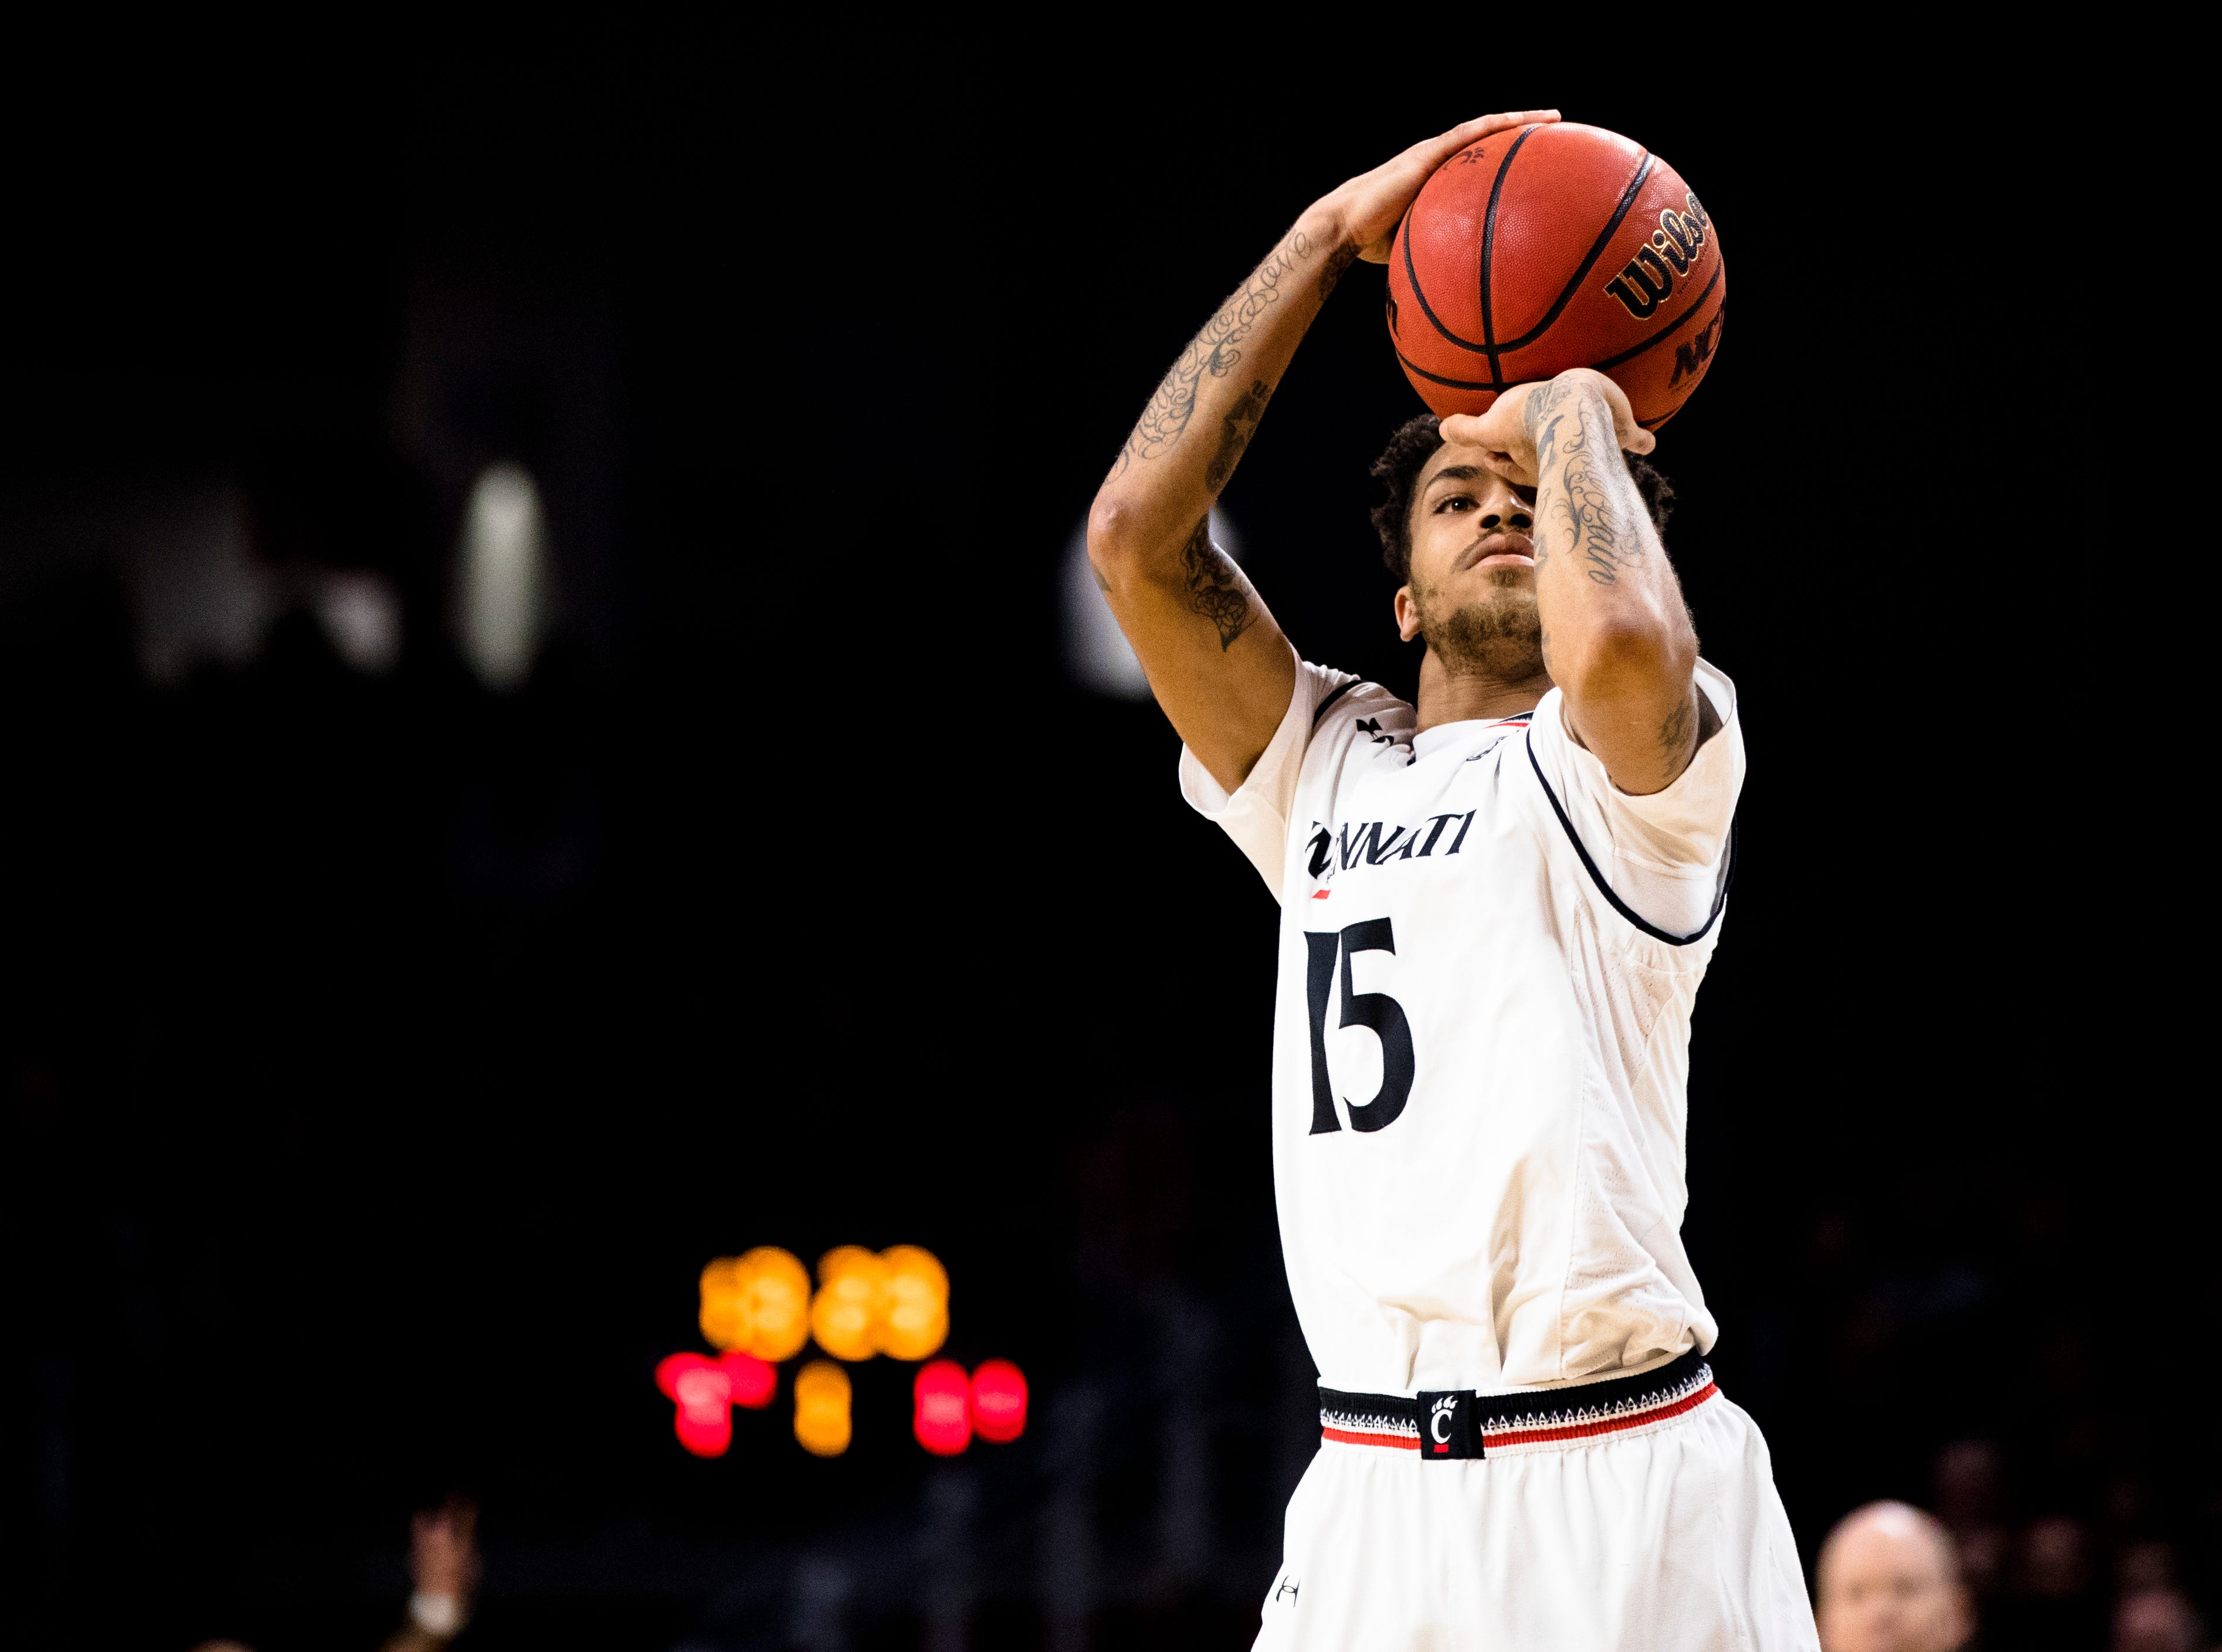 Cincinnati Bearcats guard Cane Broome (15) shoots a 3-pointer in the first half of the NCAA men's basketball game between Cincinnati Bearcats and UCF Knights on Thursday, Feb. 21, 2019, at Fifth Third Arena in Cincinnati.